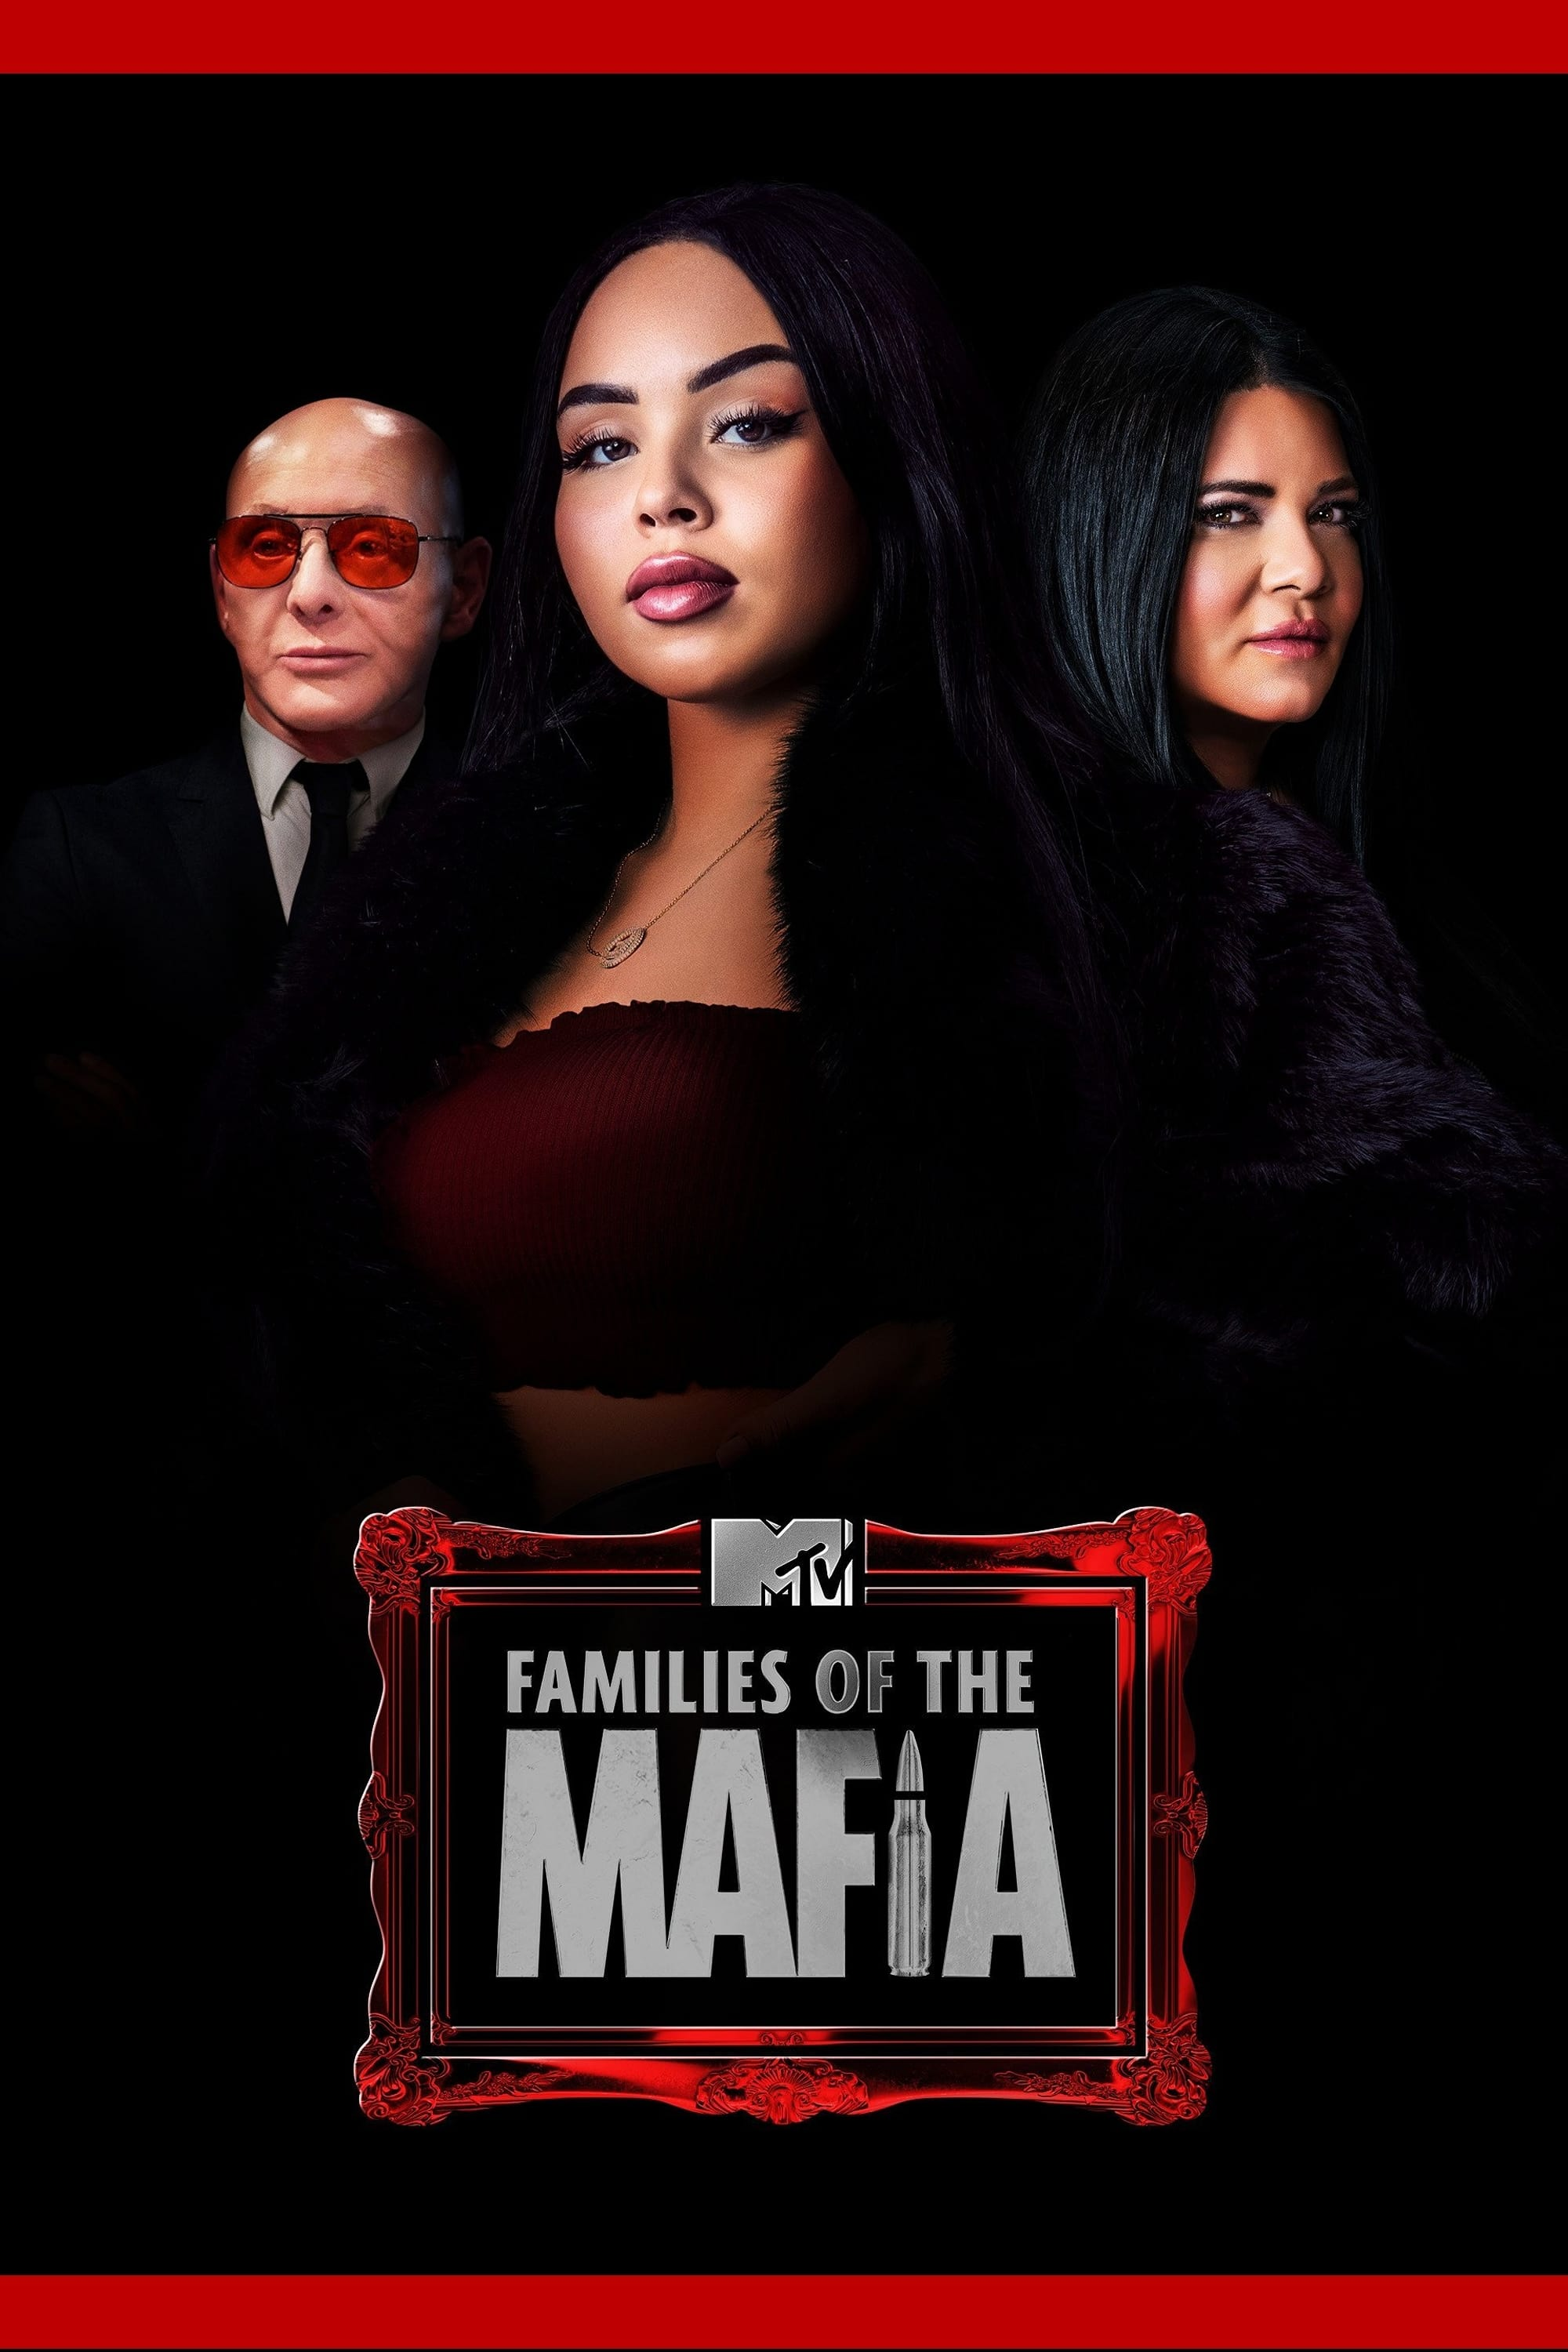 Families of the Mafia